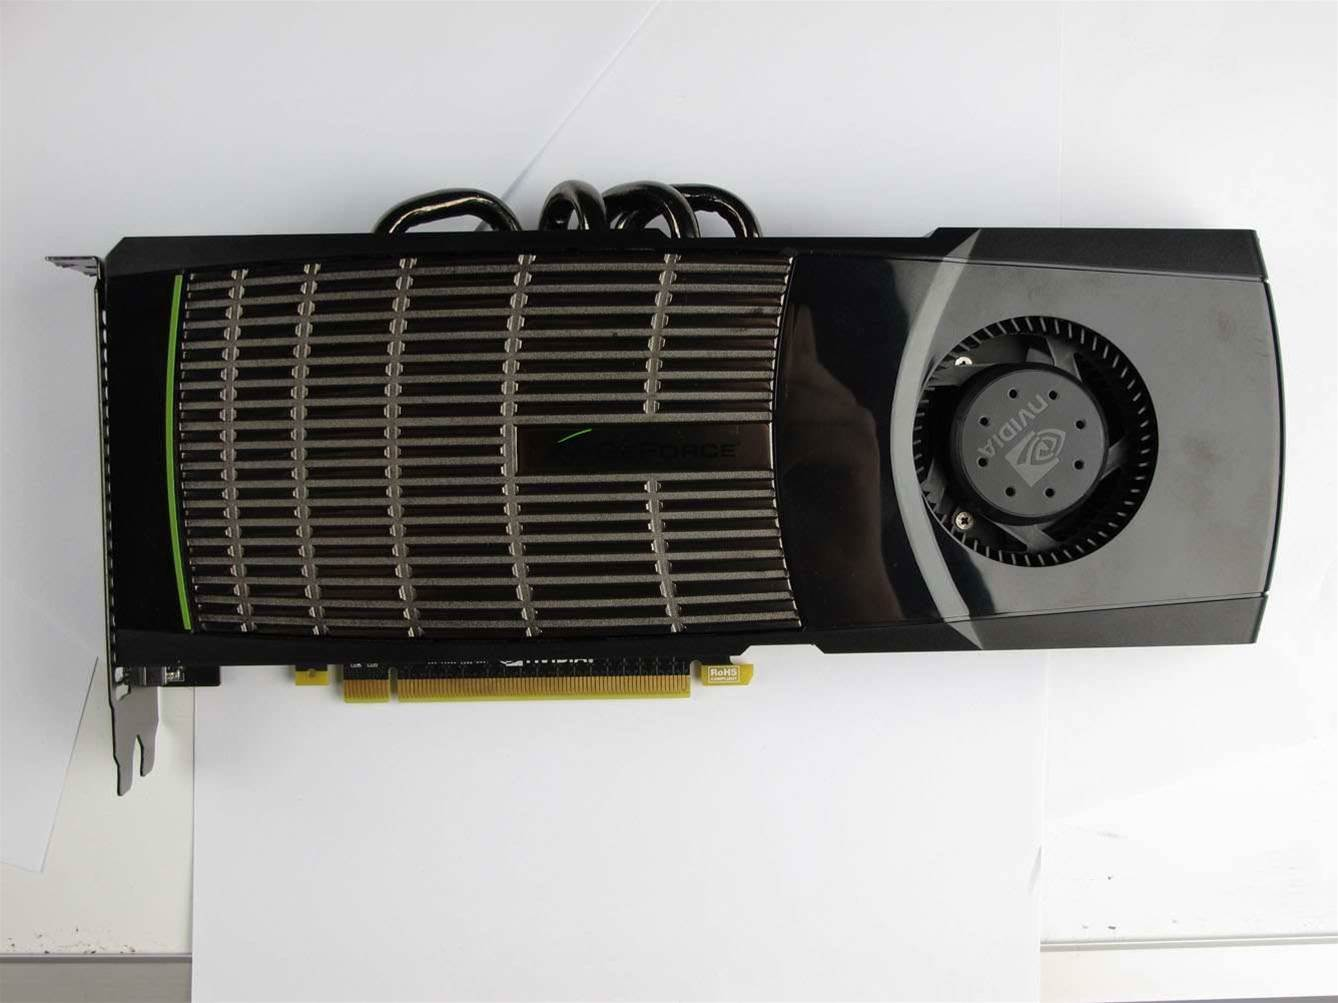 The front of the GTX480 consists of (from right to left) a squirrel-cage fan, glossy black plastic shroud, large radiating surface and finally the expansion slot bracket.